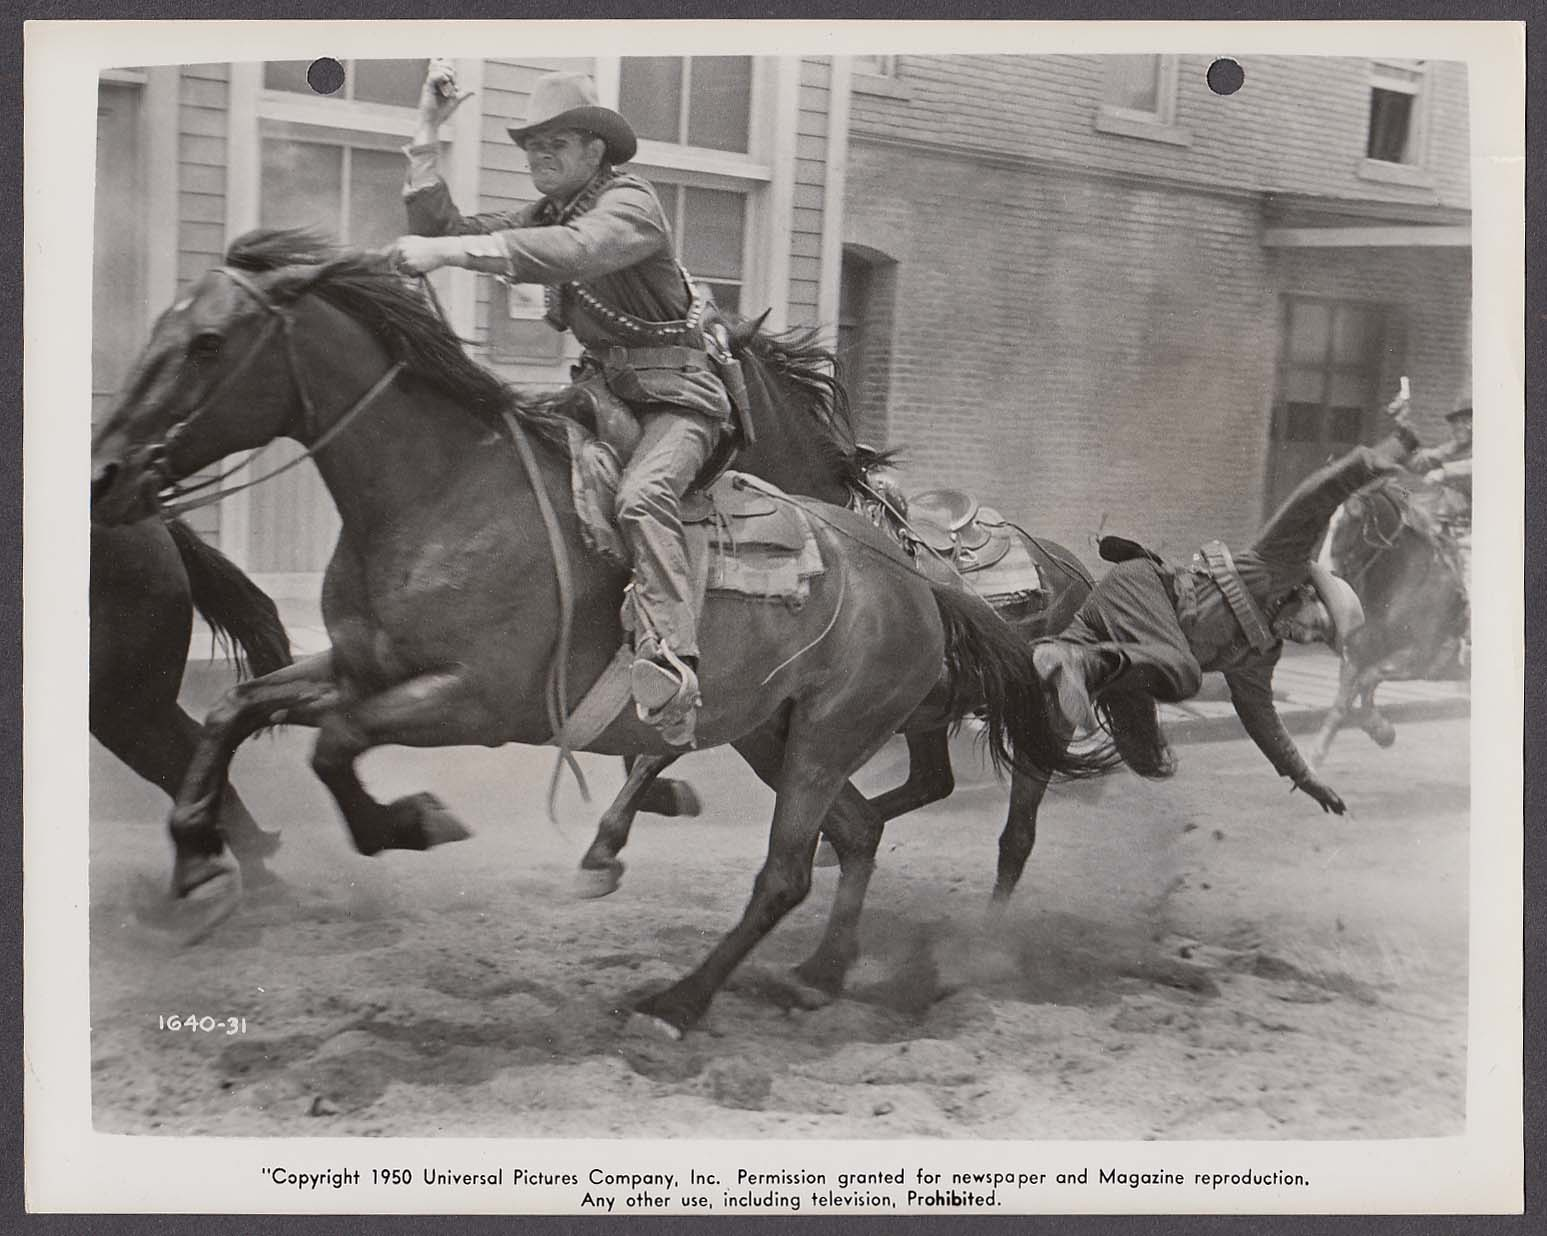 Action scene in Kansas Raiders 8x10 photo 1950 #31